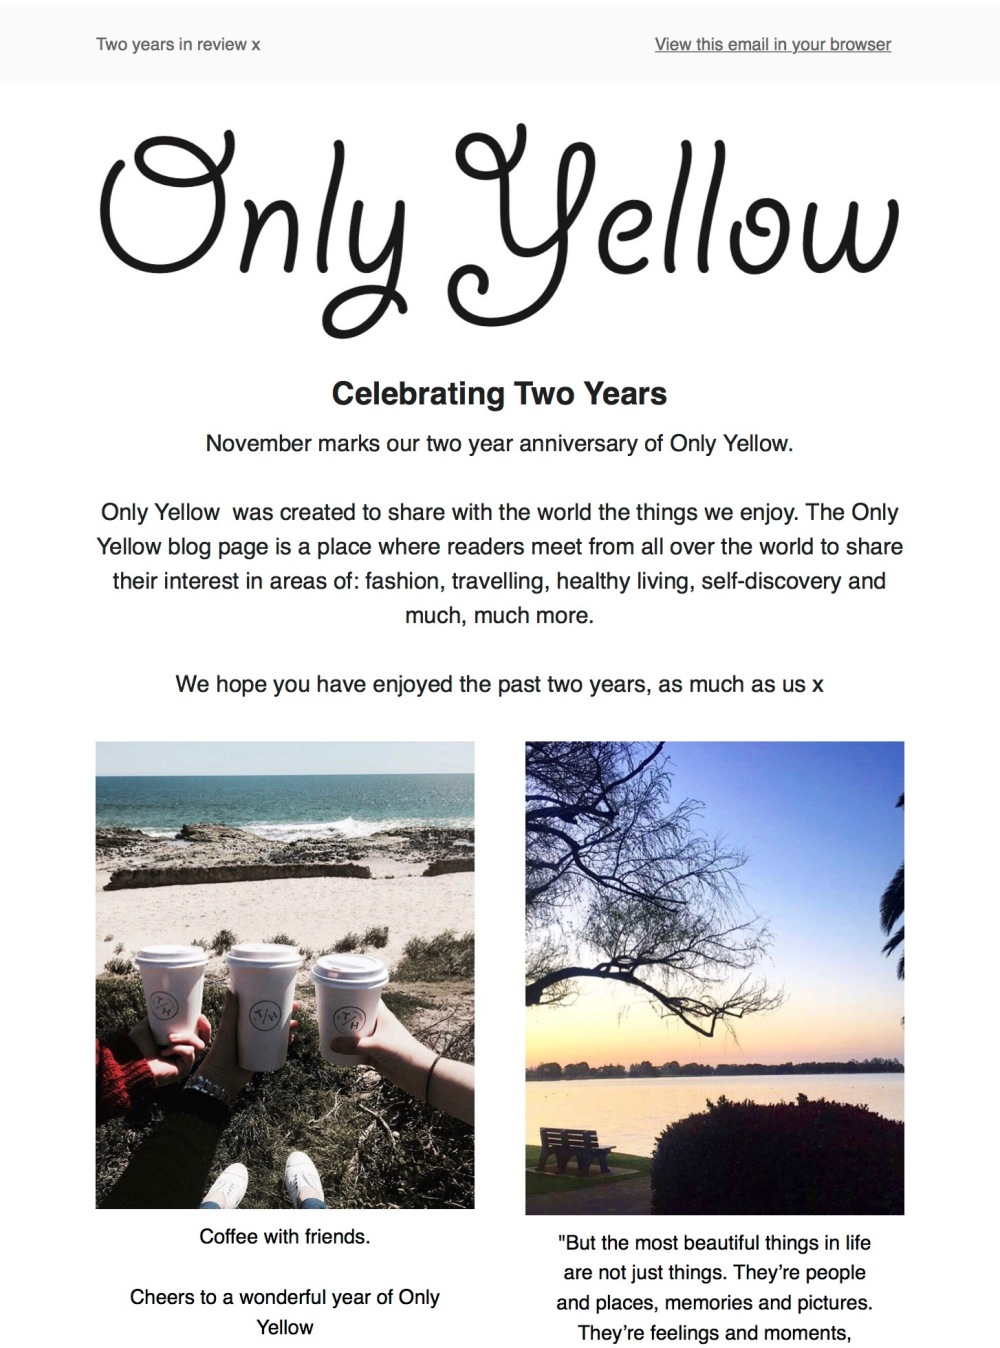 Only Yellow - Celebrating Two Years 2.jpg